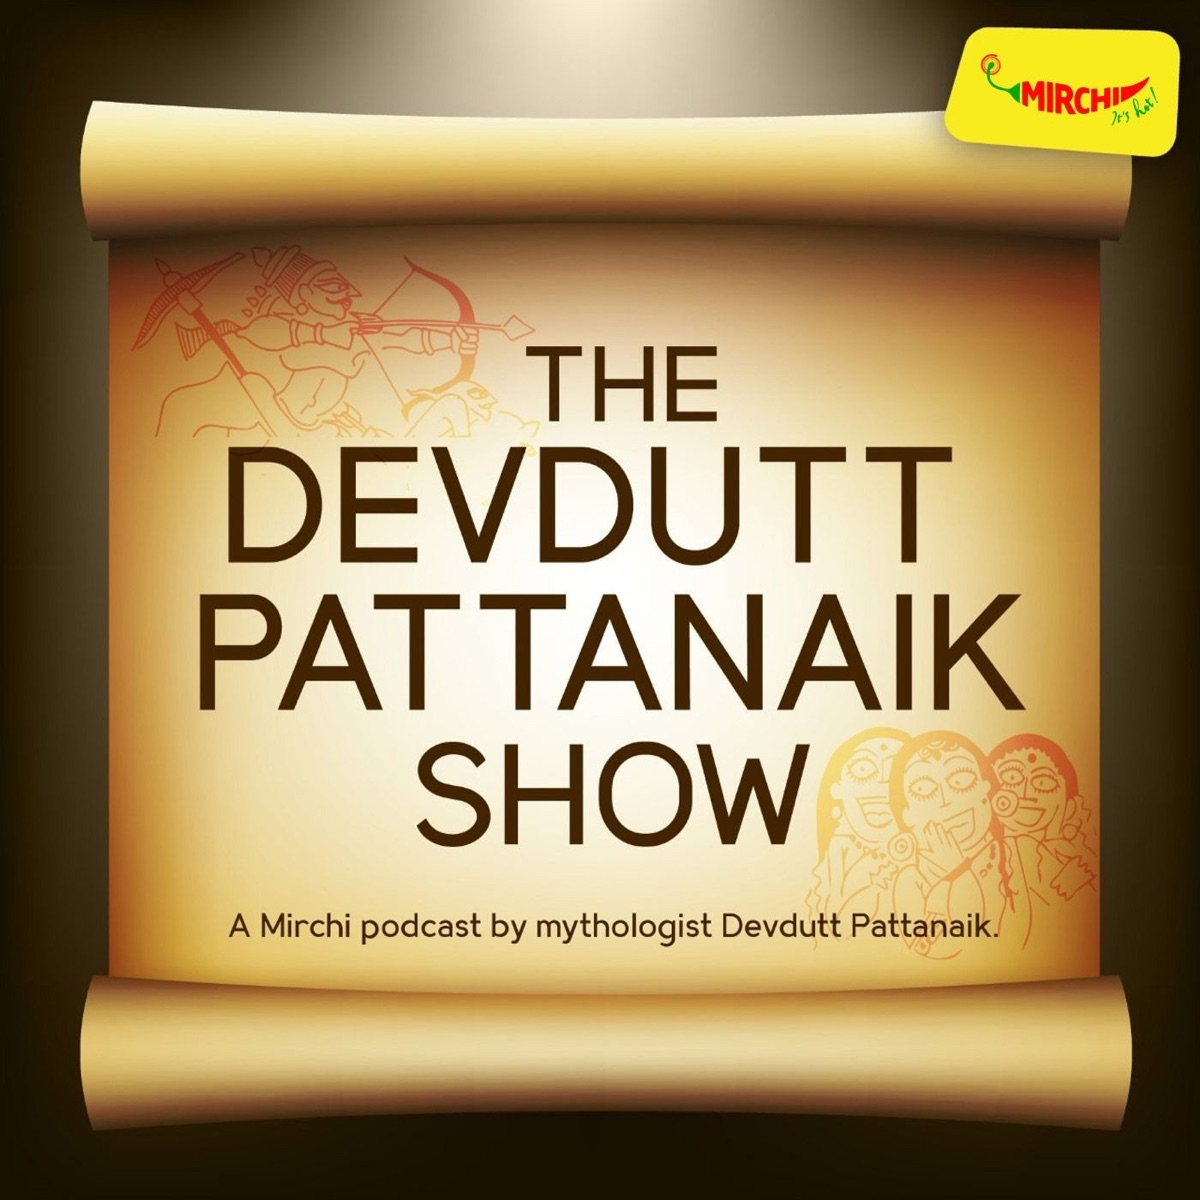 The Devdutt Pattanaik Show | Mirchi